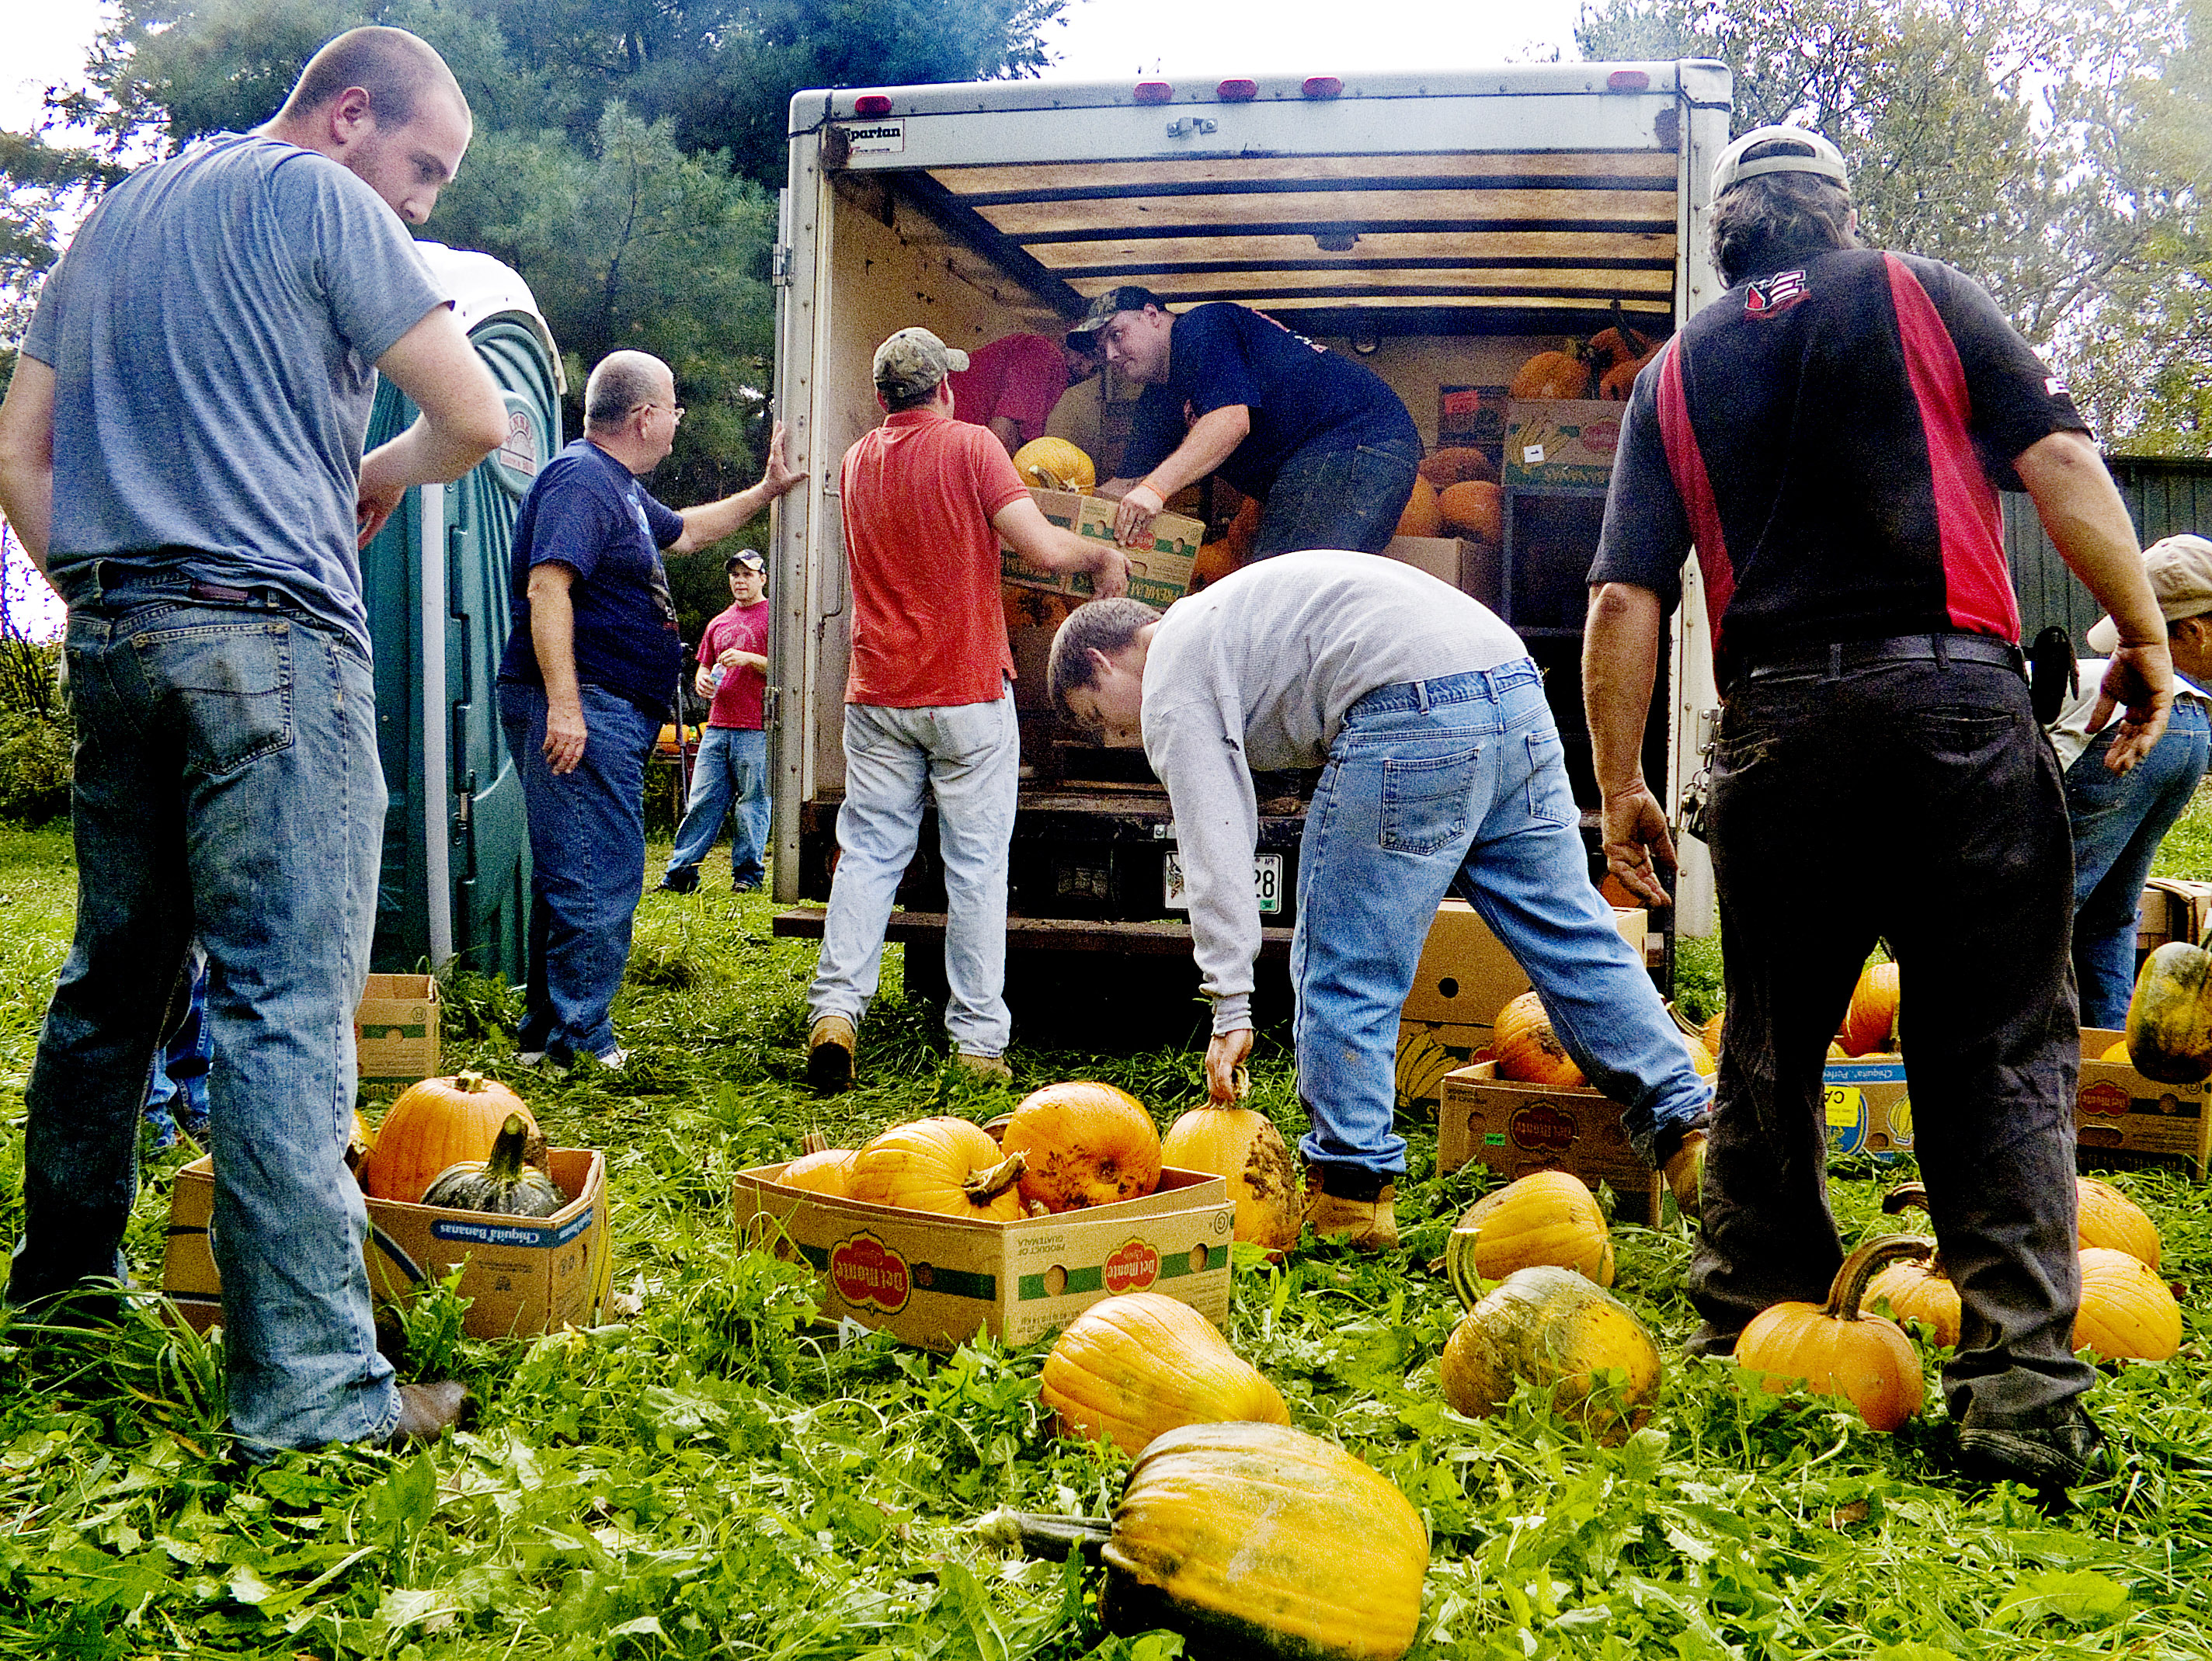 Photo courtesy of Ethan Andrews